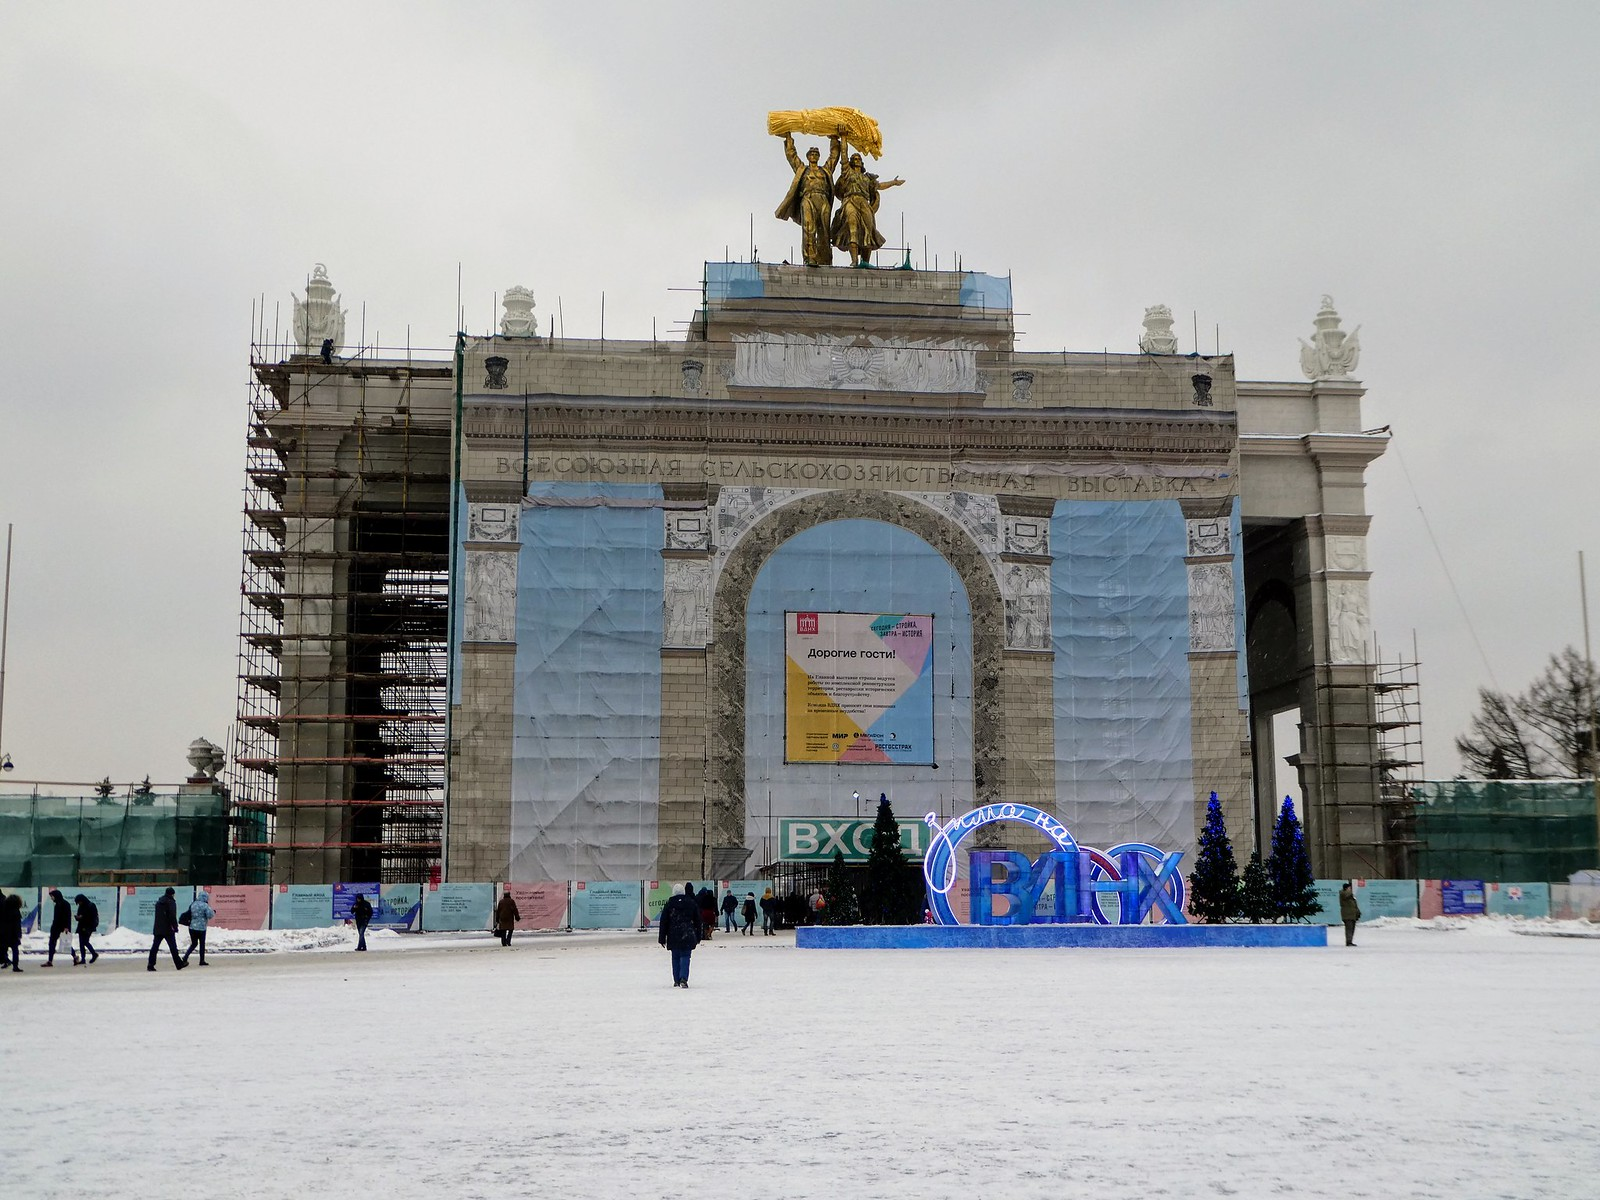 Entrance Archway to the VDNKH Park, Moscow